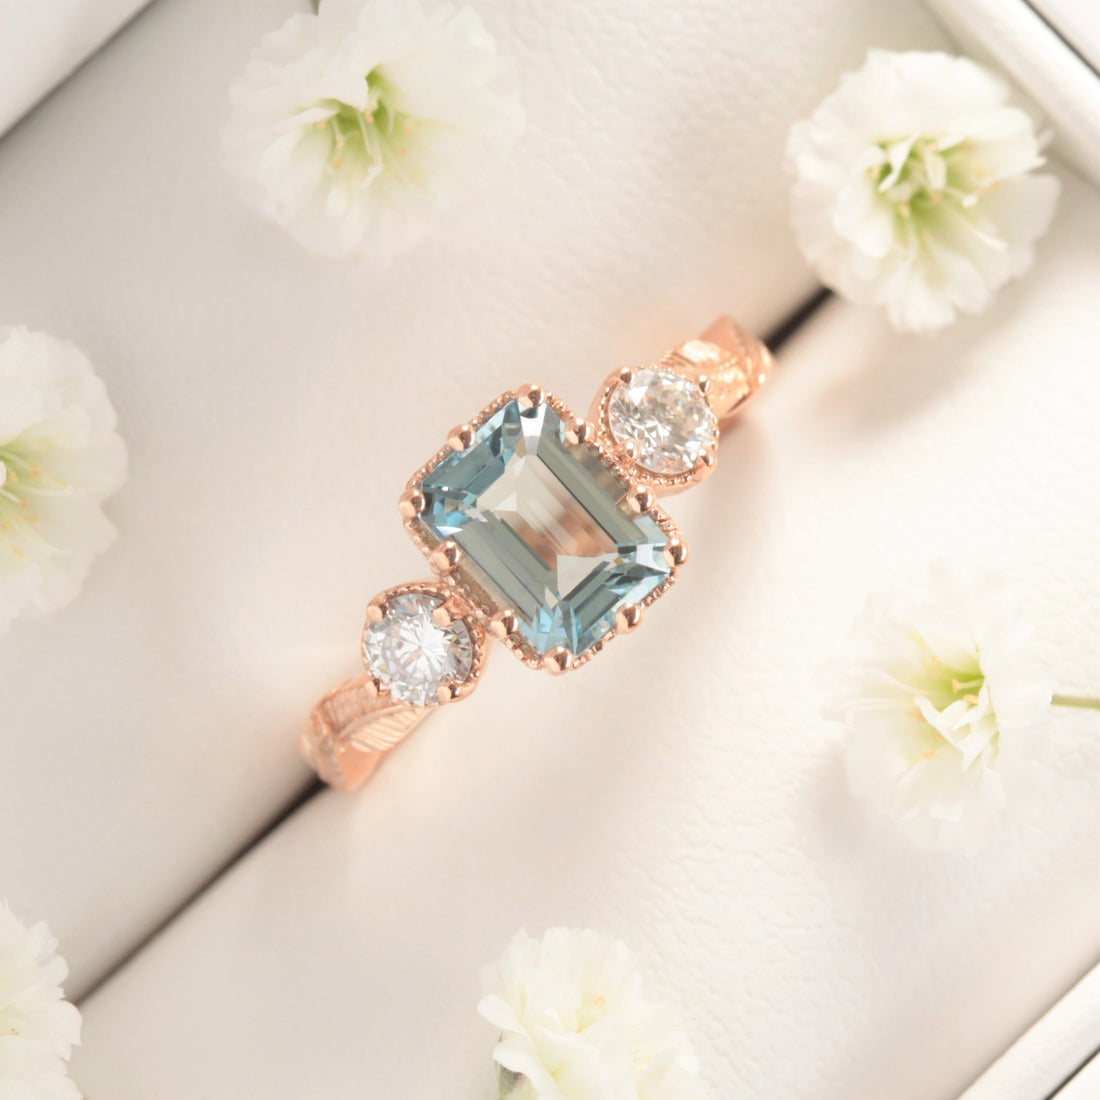 aquamarine and diamond nature engagement ring with leaves